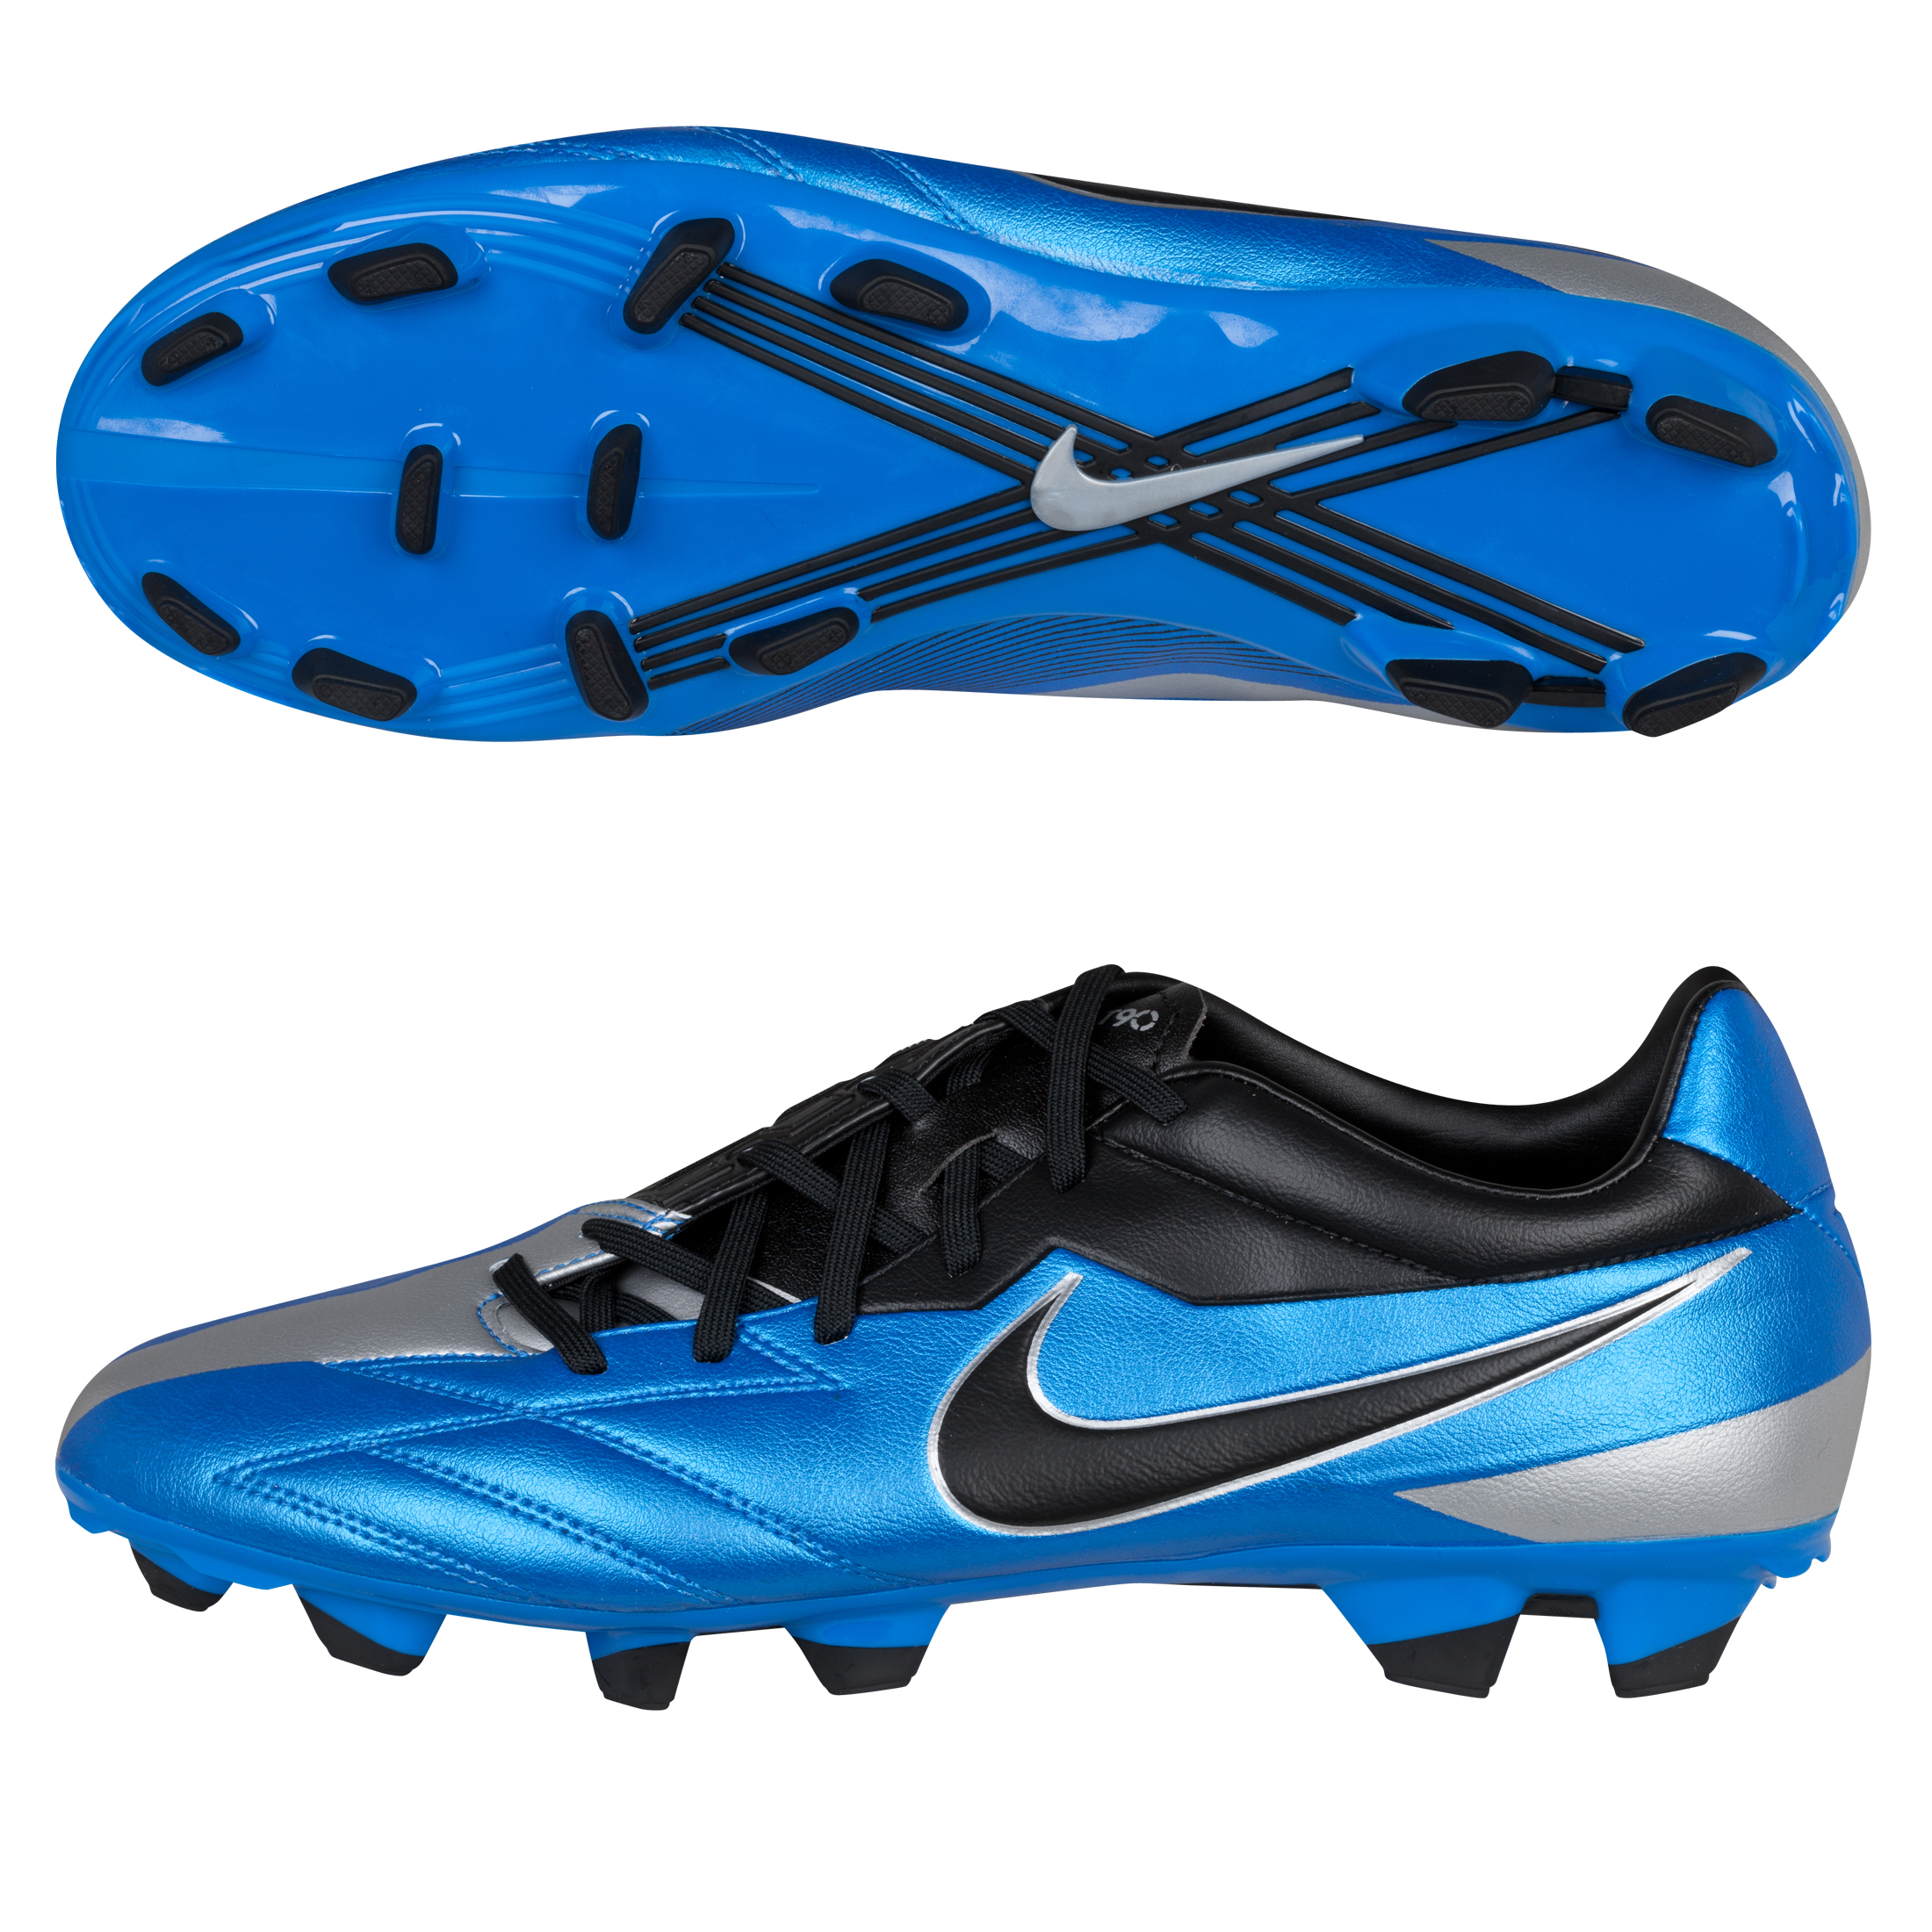 Nike T90 Strike IV Firm Ground Football Boots - Soar/Black/Metallic Silver